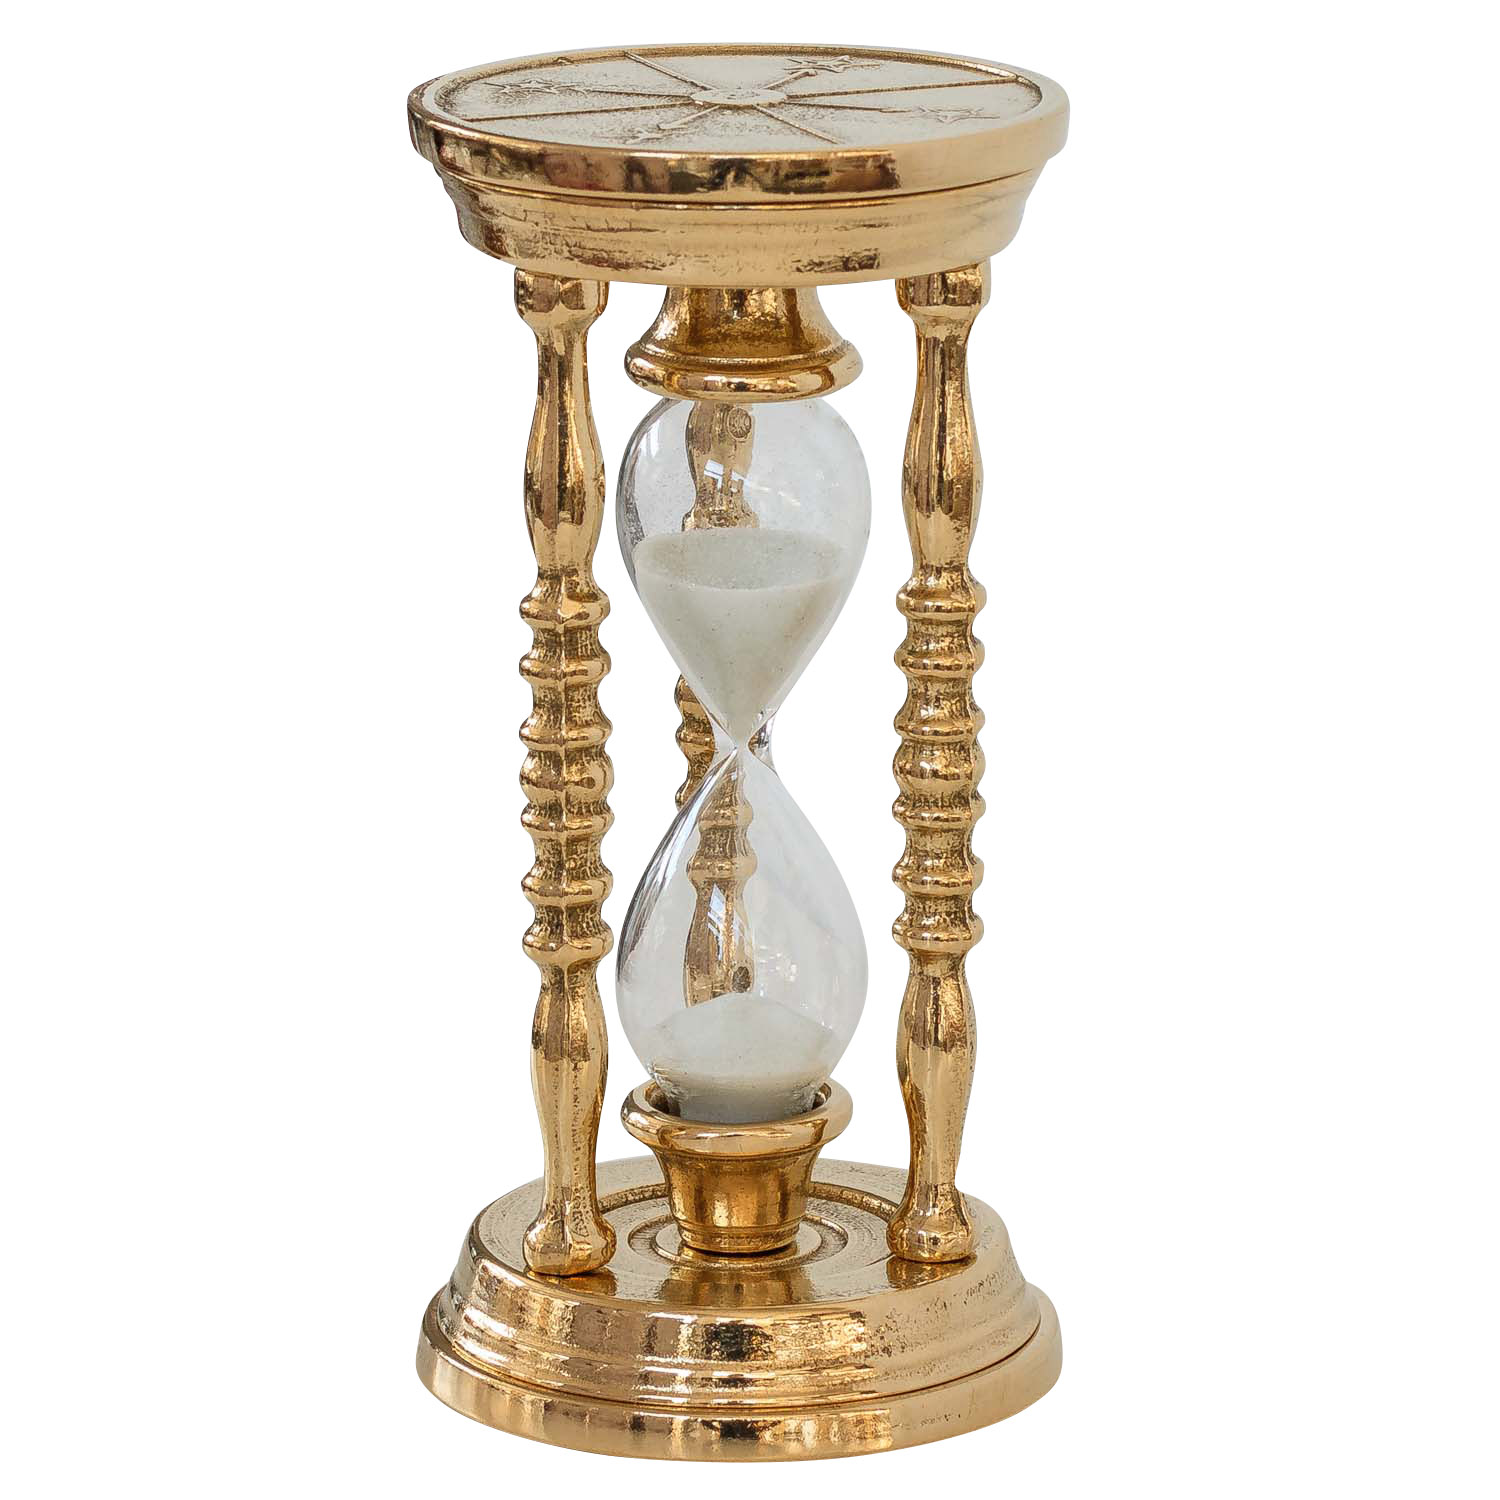 Sand glass hour egg timer 5 min  decoration brass antique style - 14cm